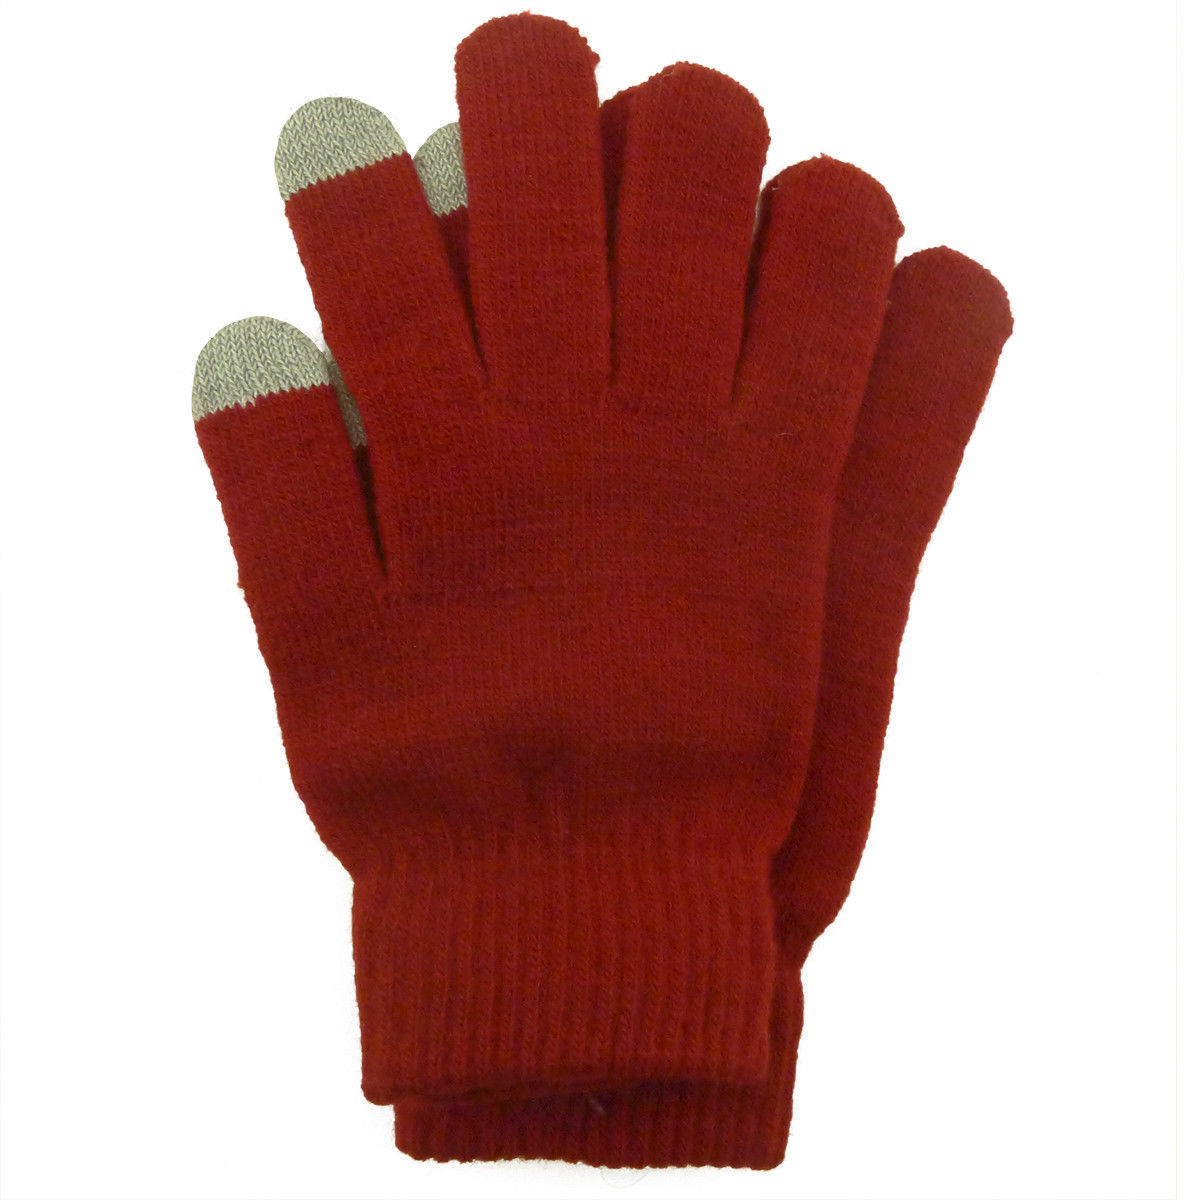 Unisex Touch Screen Knit Gloves Magic Texting Fingers Smart Phone Warm Winter